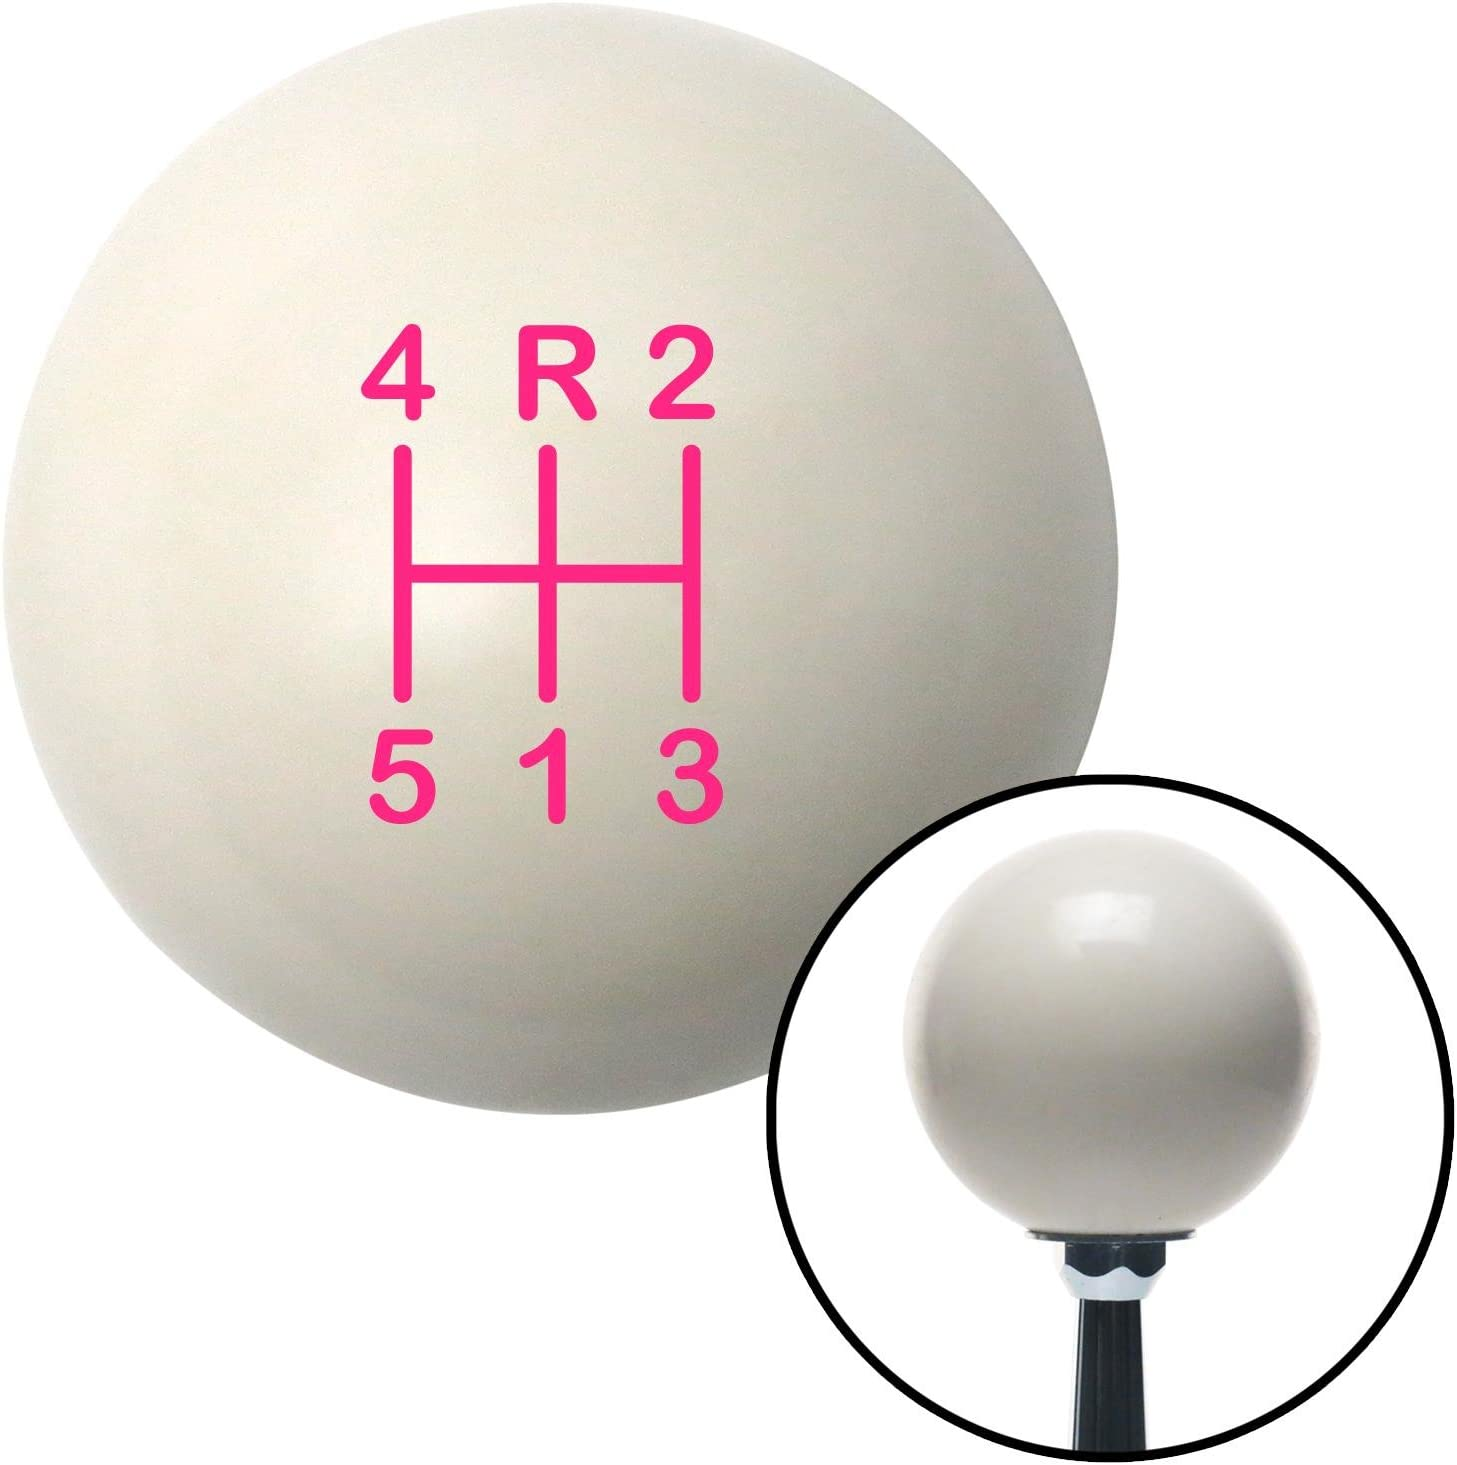 American Shifter 76679 Ivory Shift Knob with M16 x 1.5 Insert Pink Shift Pattern 48n